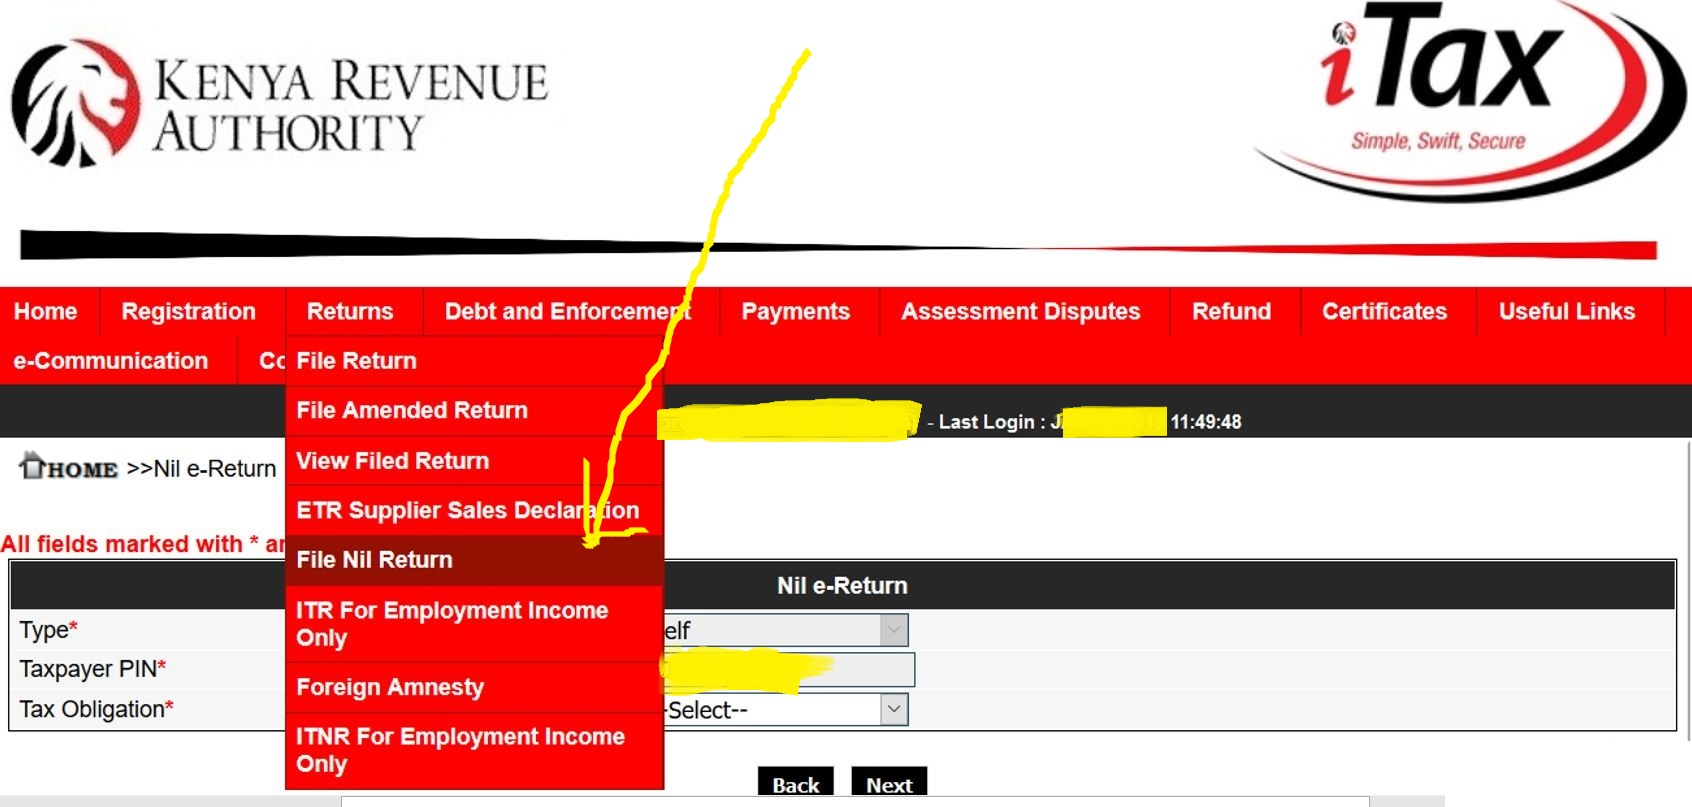 KRA File nil returns page on itax portal for campus student